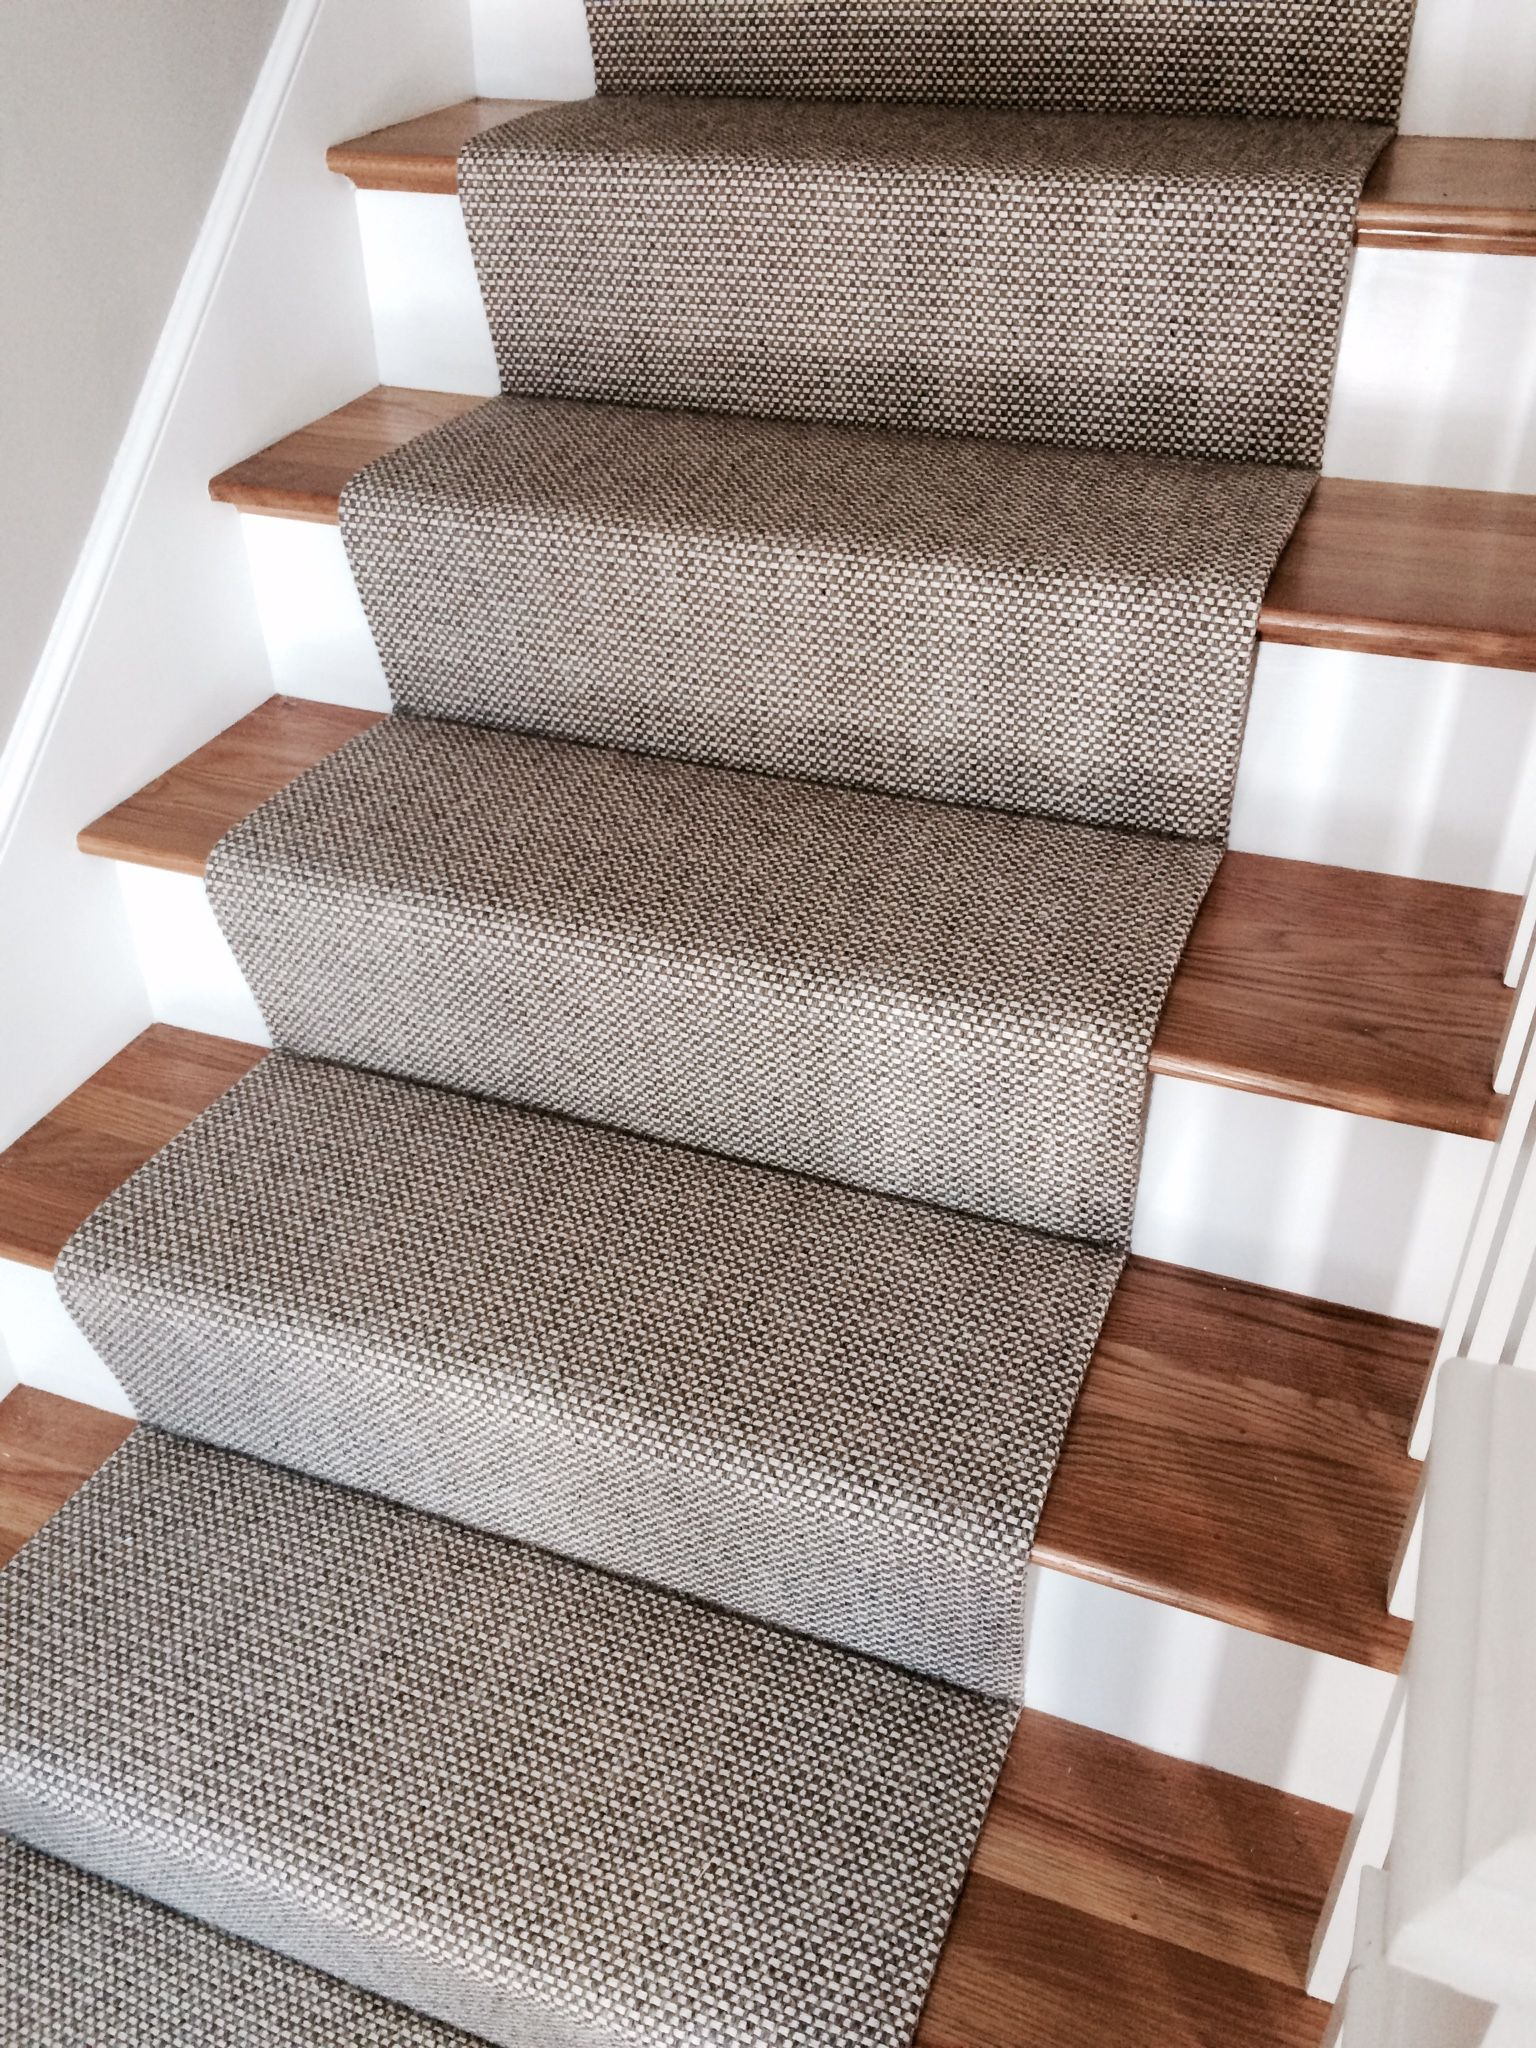 Woven Wool Stair Runner That We Fabricated Using A Fold And Stitch   Wool Carpet Runners For Stairs   Flooring   Woven   Rectangular Cord Treads   Stair Country Style   Modern